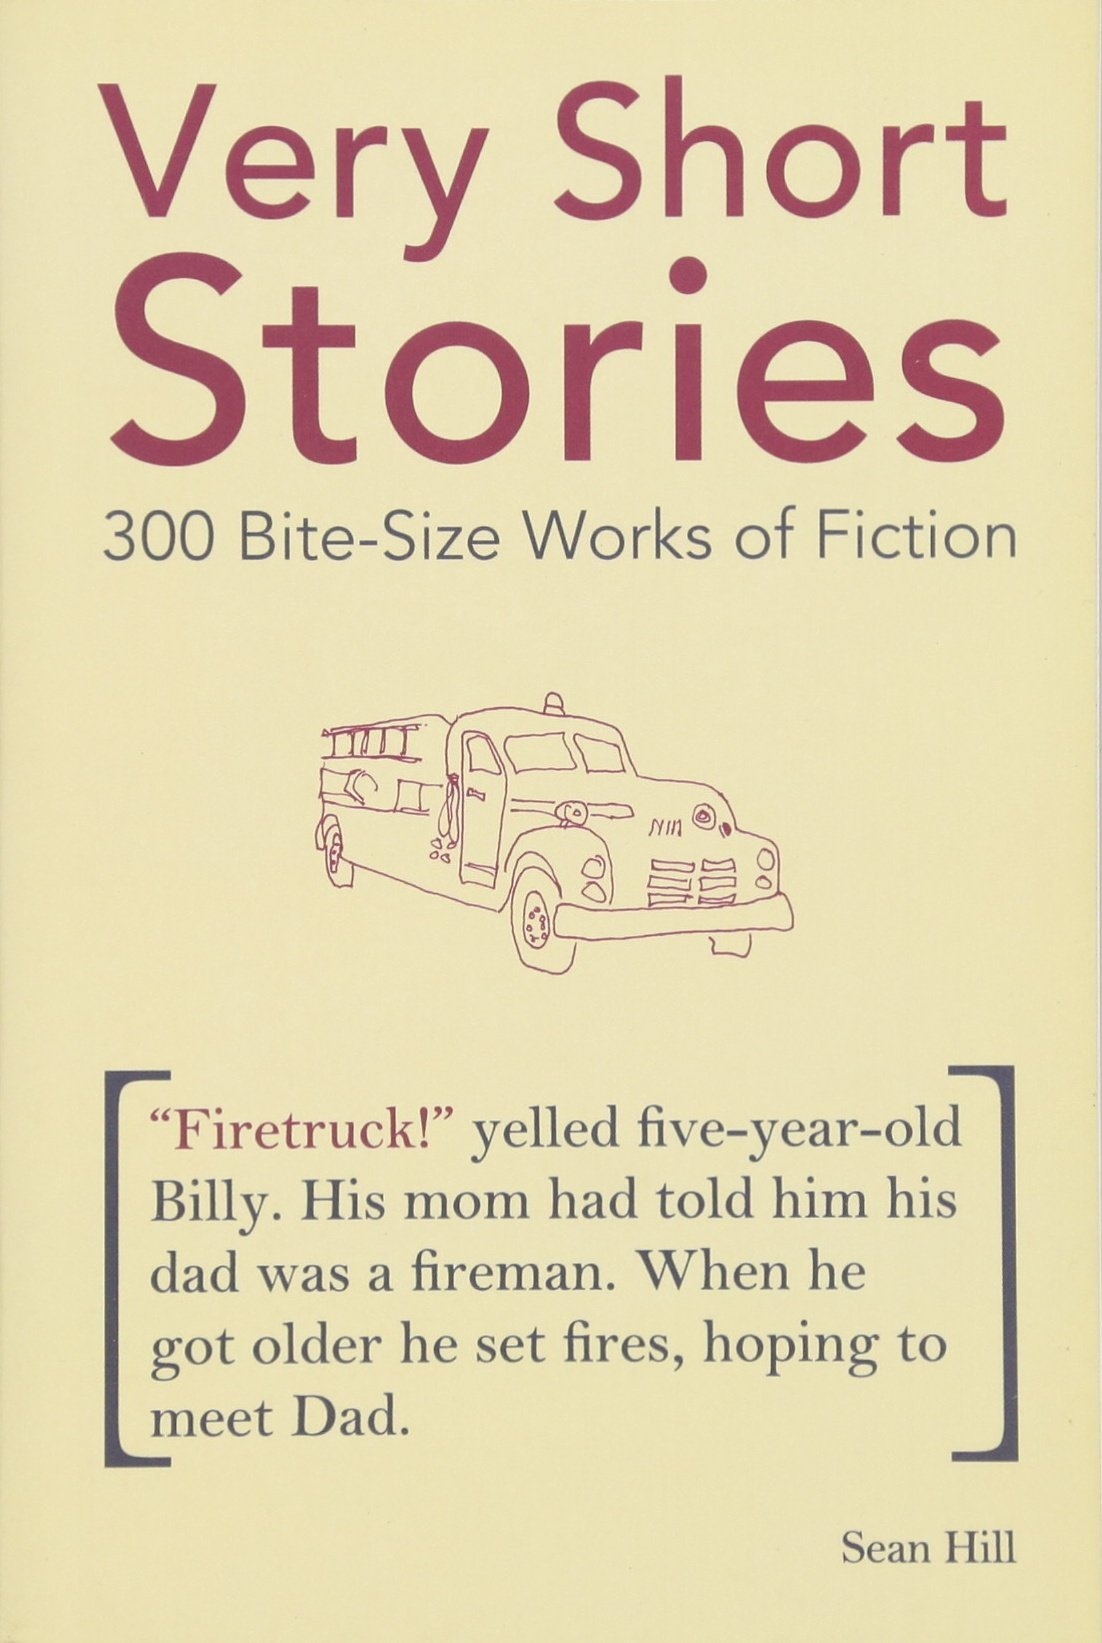 Very short stories 300 bite size works of fiction sean hill very short stories 300 bite size works of fiction sean hill 9781612430164 amazon books fandeluxe Images